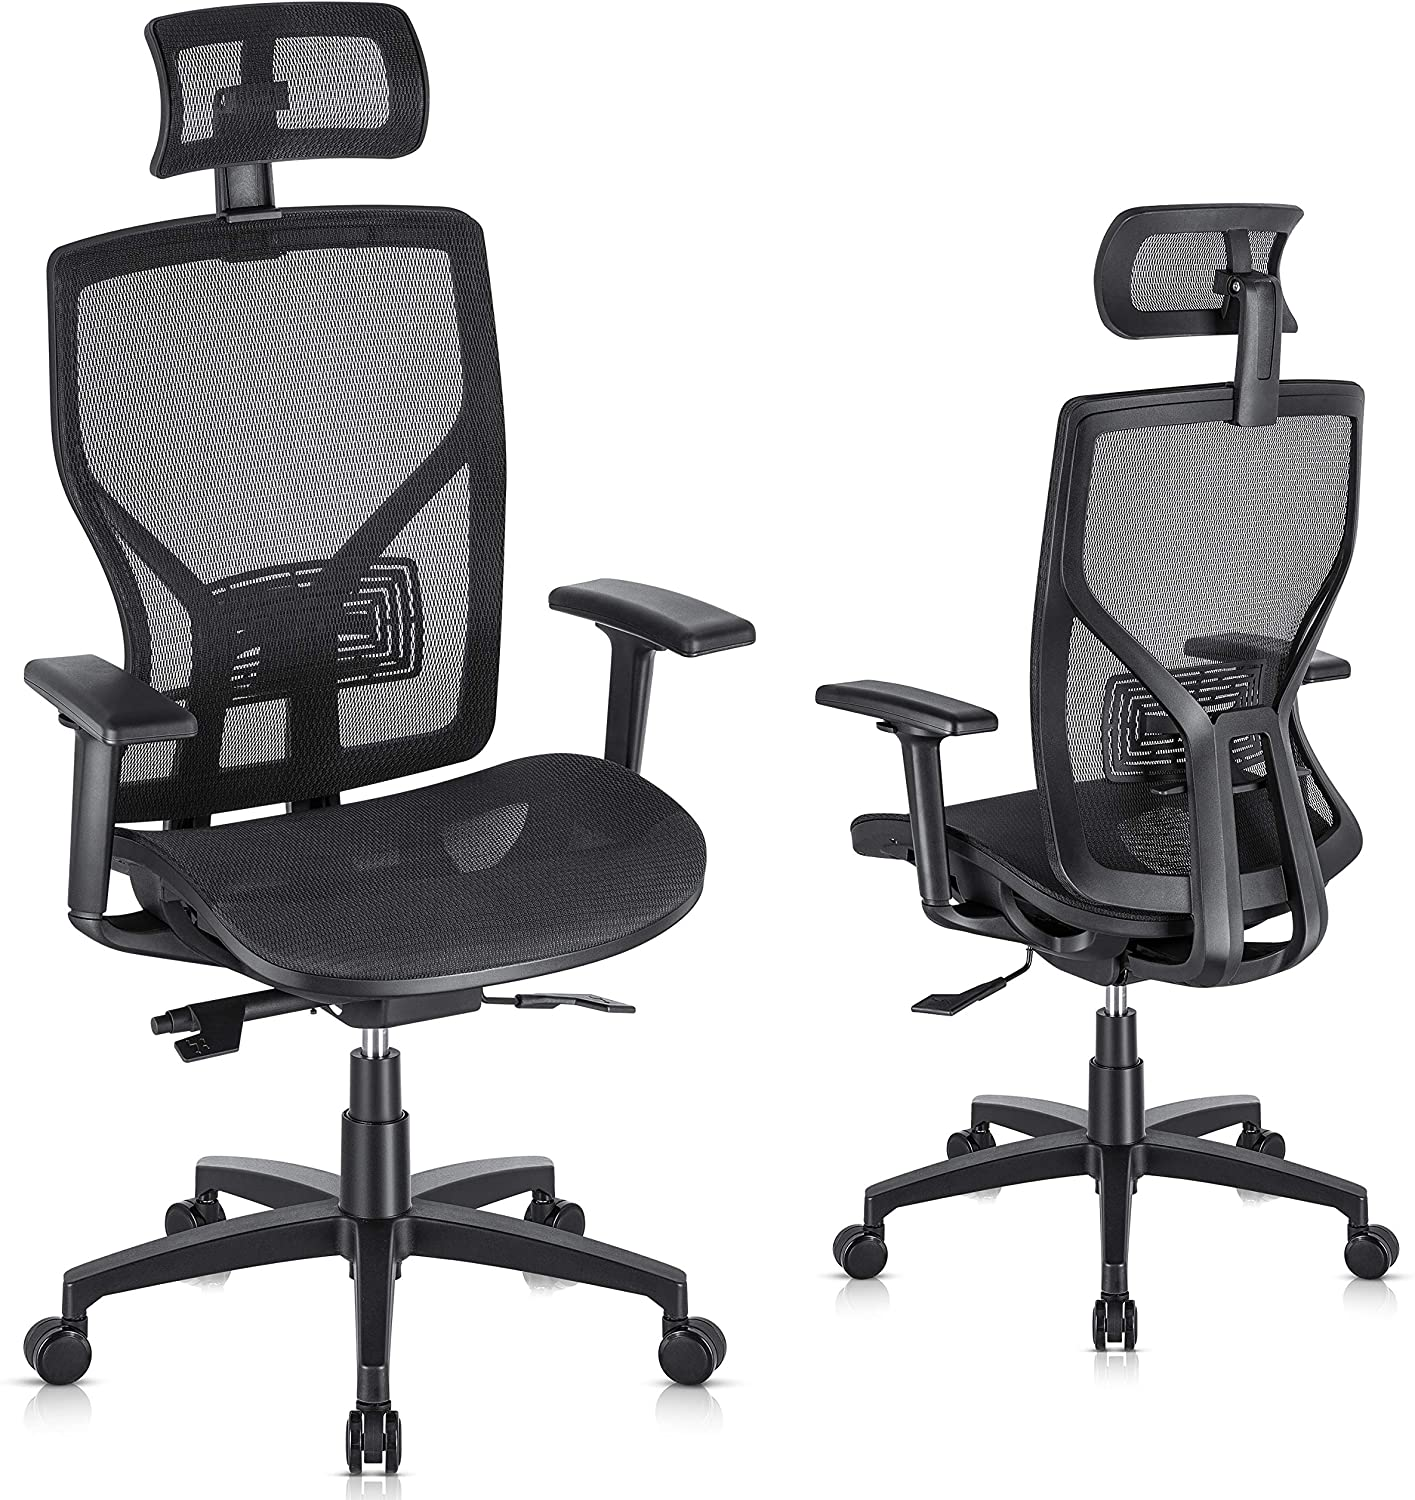 SUNNOW Ergonomic Office Chair Computer Mesh Chair with Adjustable Lumbar Support, Headrest, 3D Armrest-High Back Swviel Task Executive Chair for Home Office